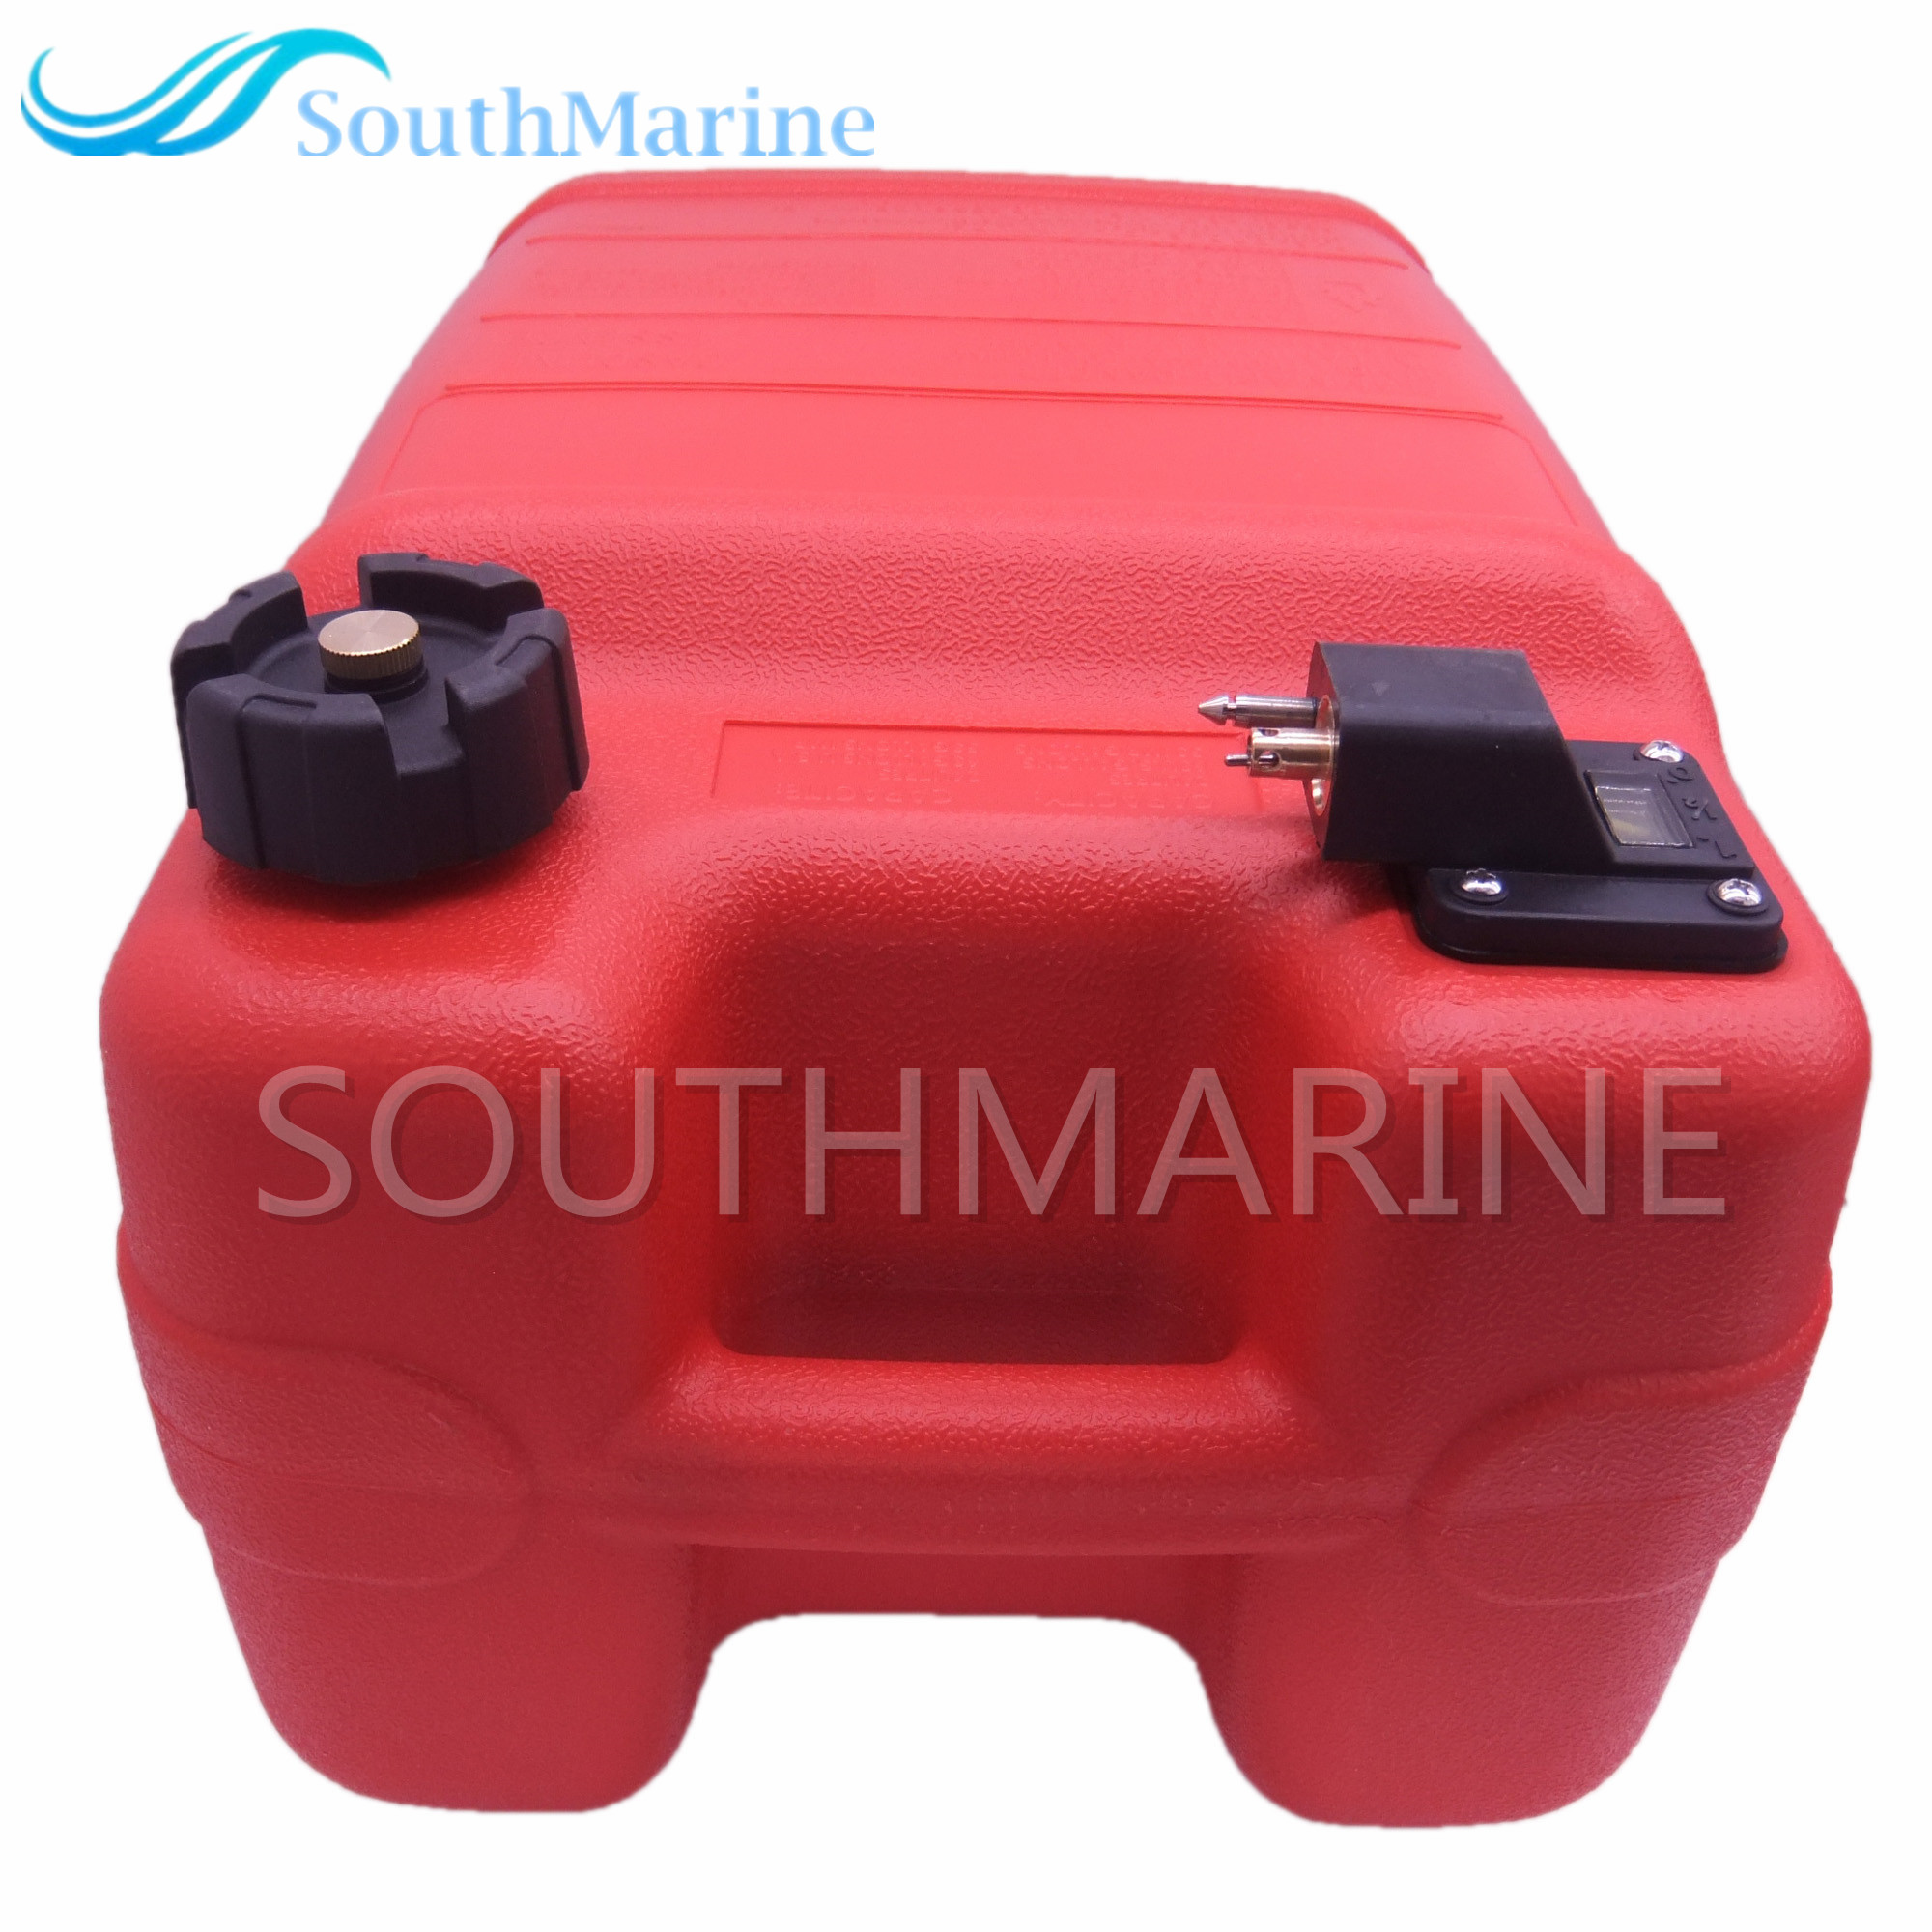 24L External Fuel Tank Assembly for Yamaha Outboard Engine with Fuel Cap & Fuel Connector & Fuel Gauge Boat Motor Part boat motor 24l fuel tank assembly for yamaha outboard engine with fuel cap and fuel gauge